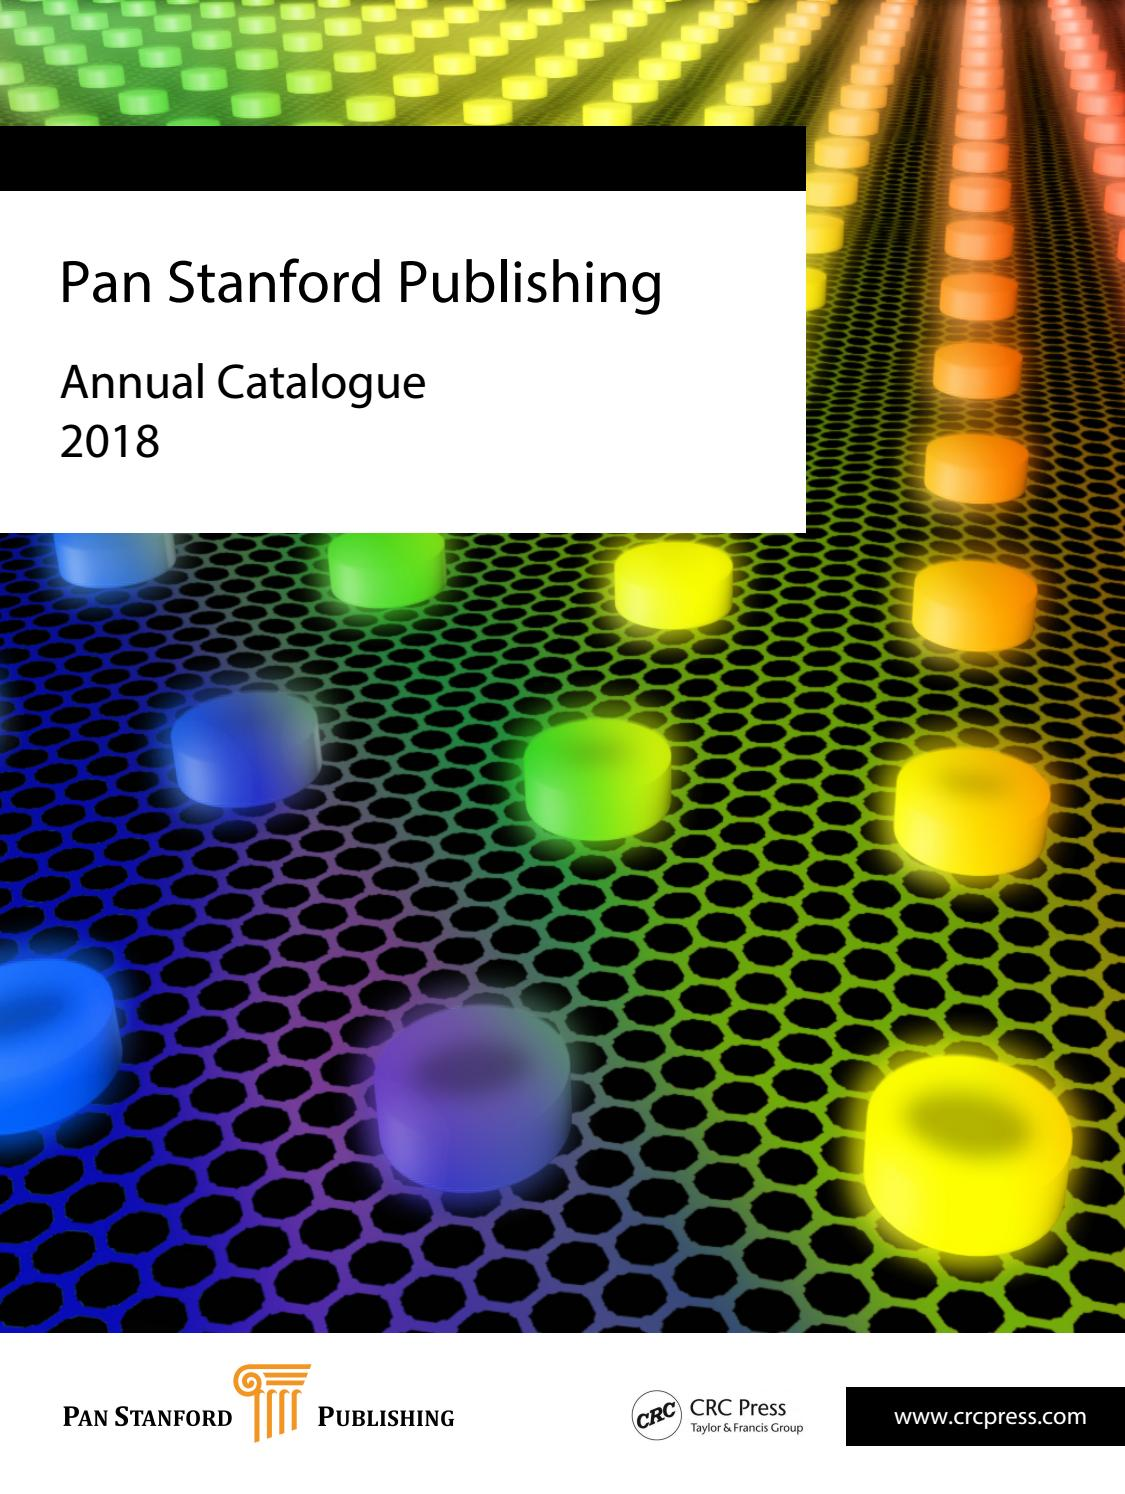 Pan Stanford Publishing Annual Catalogue 2018 By Owner Updated Wiring From Enrique Prati Diagrampdf Issuu